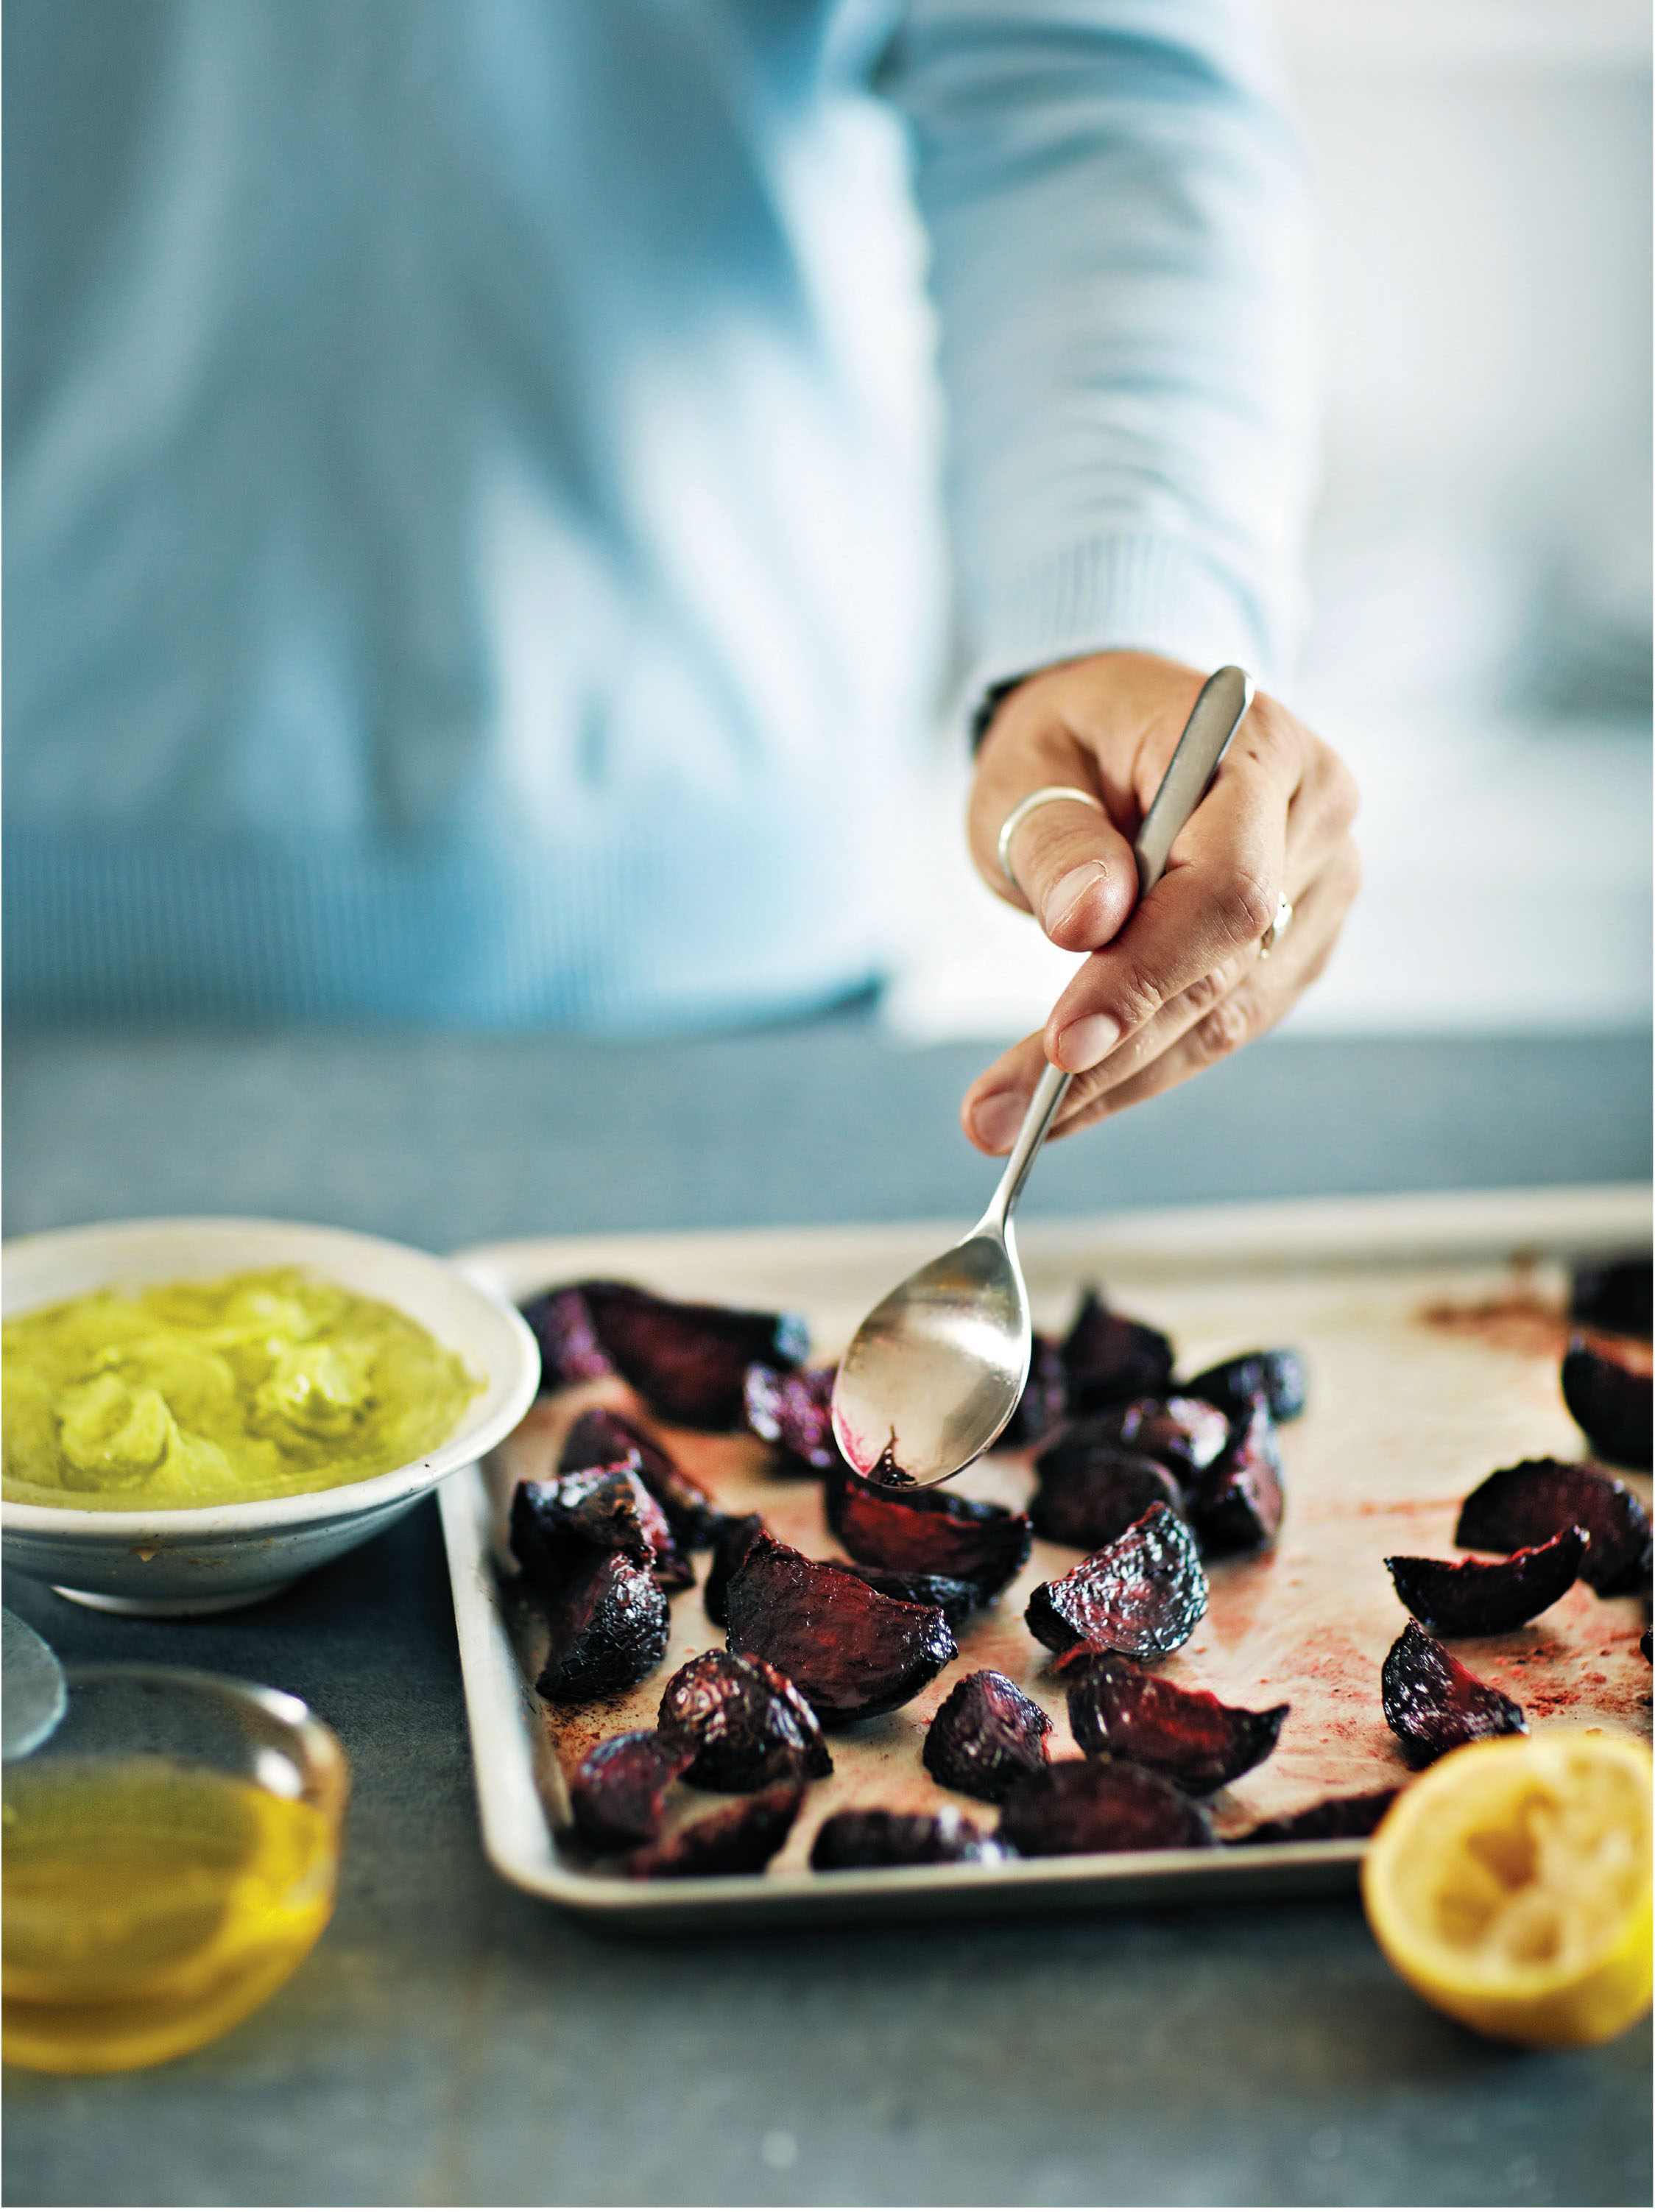 Roast beetroot wedges with avocado and horseradish